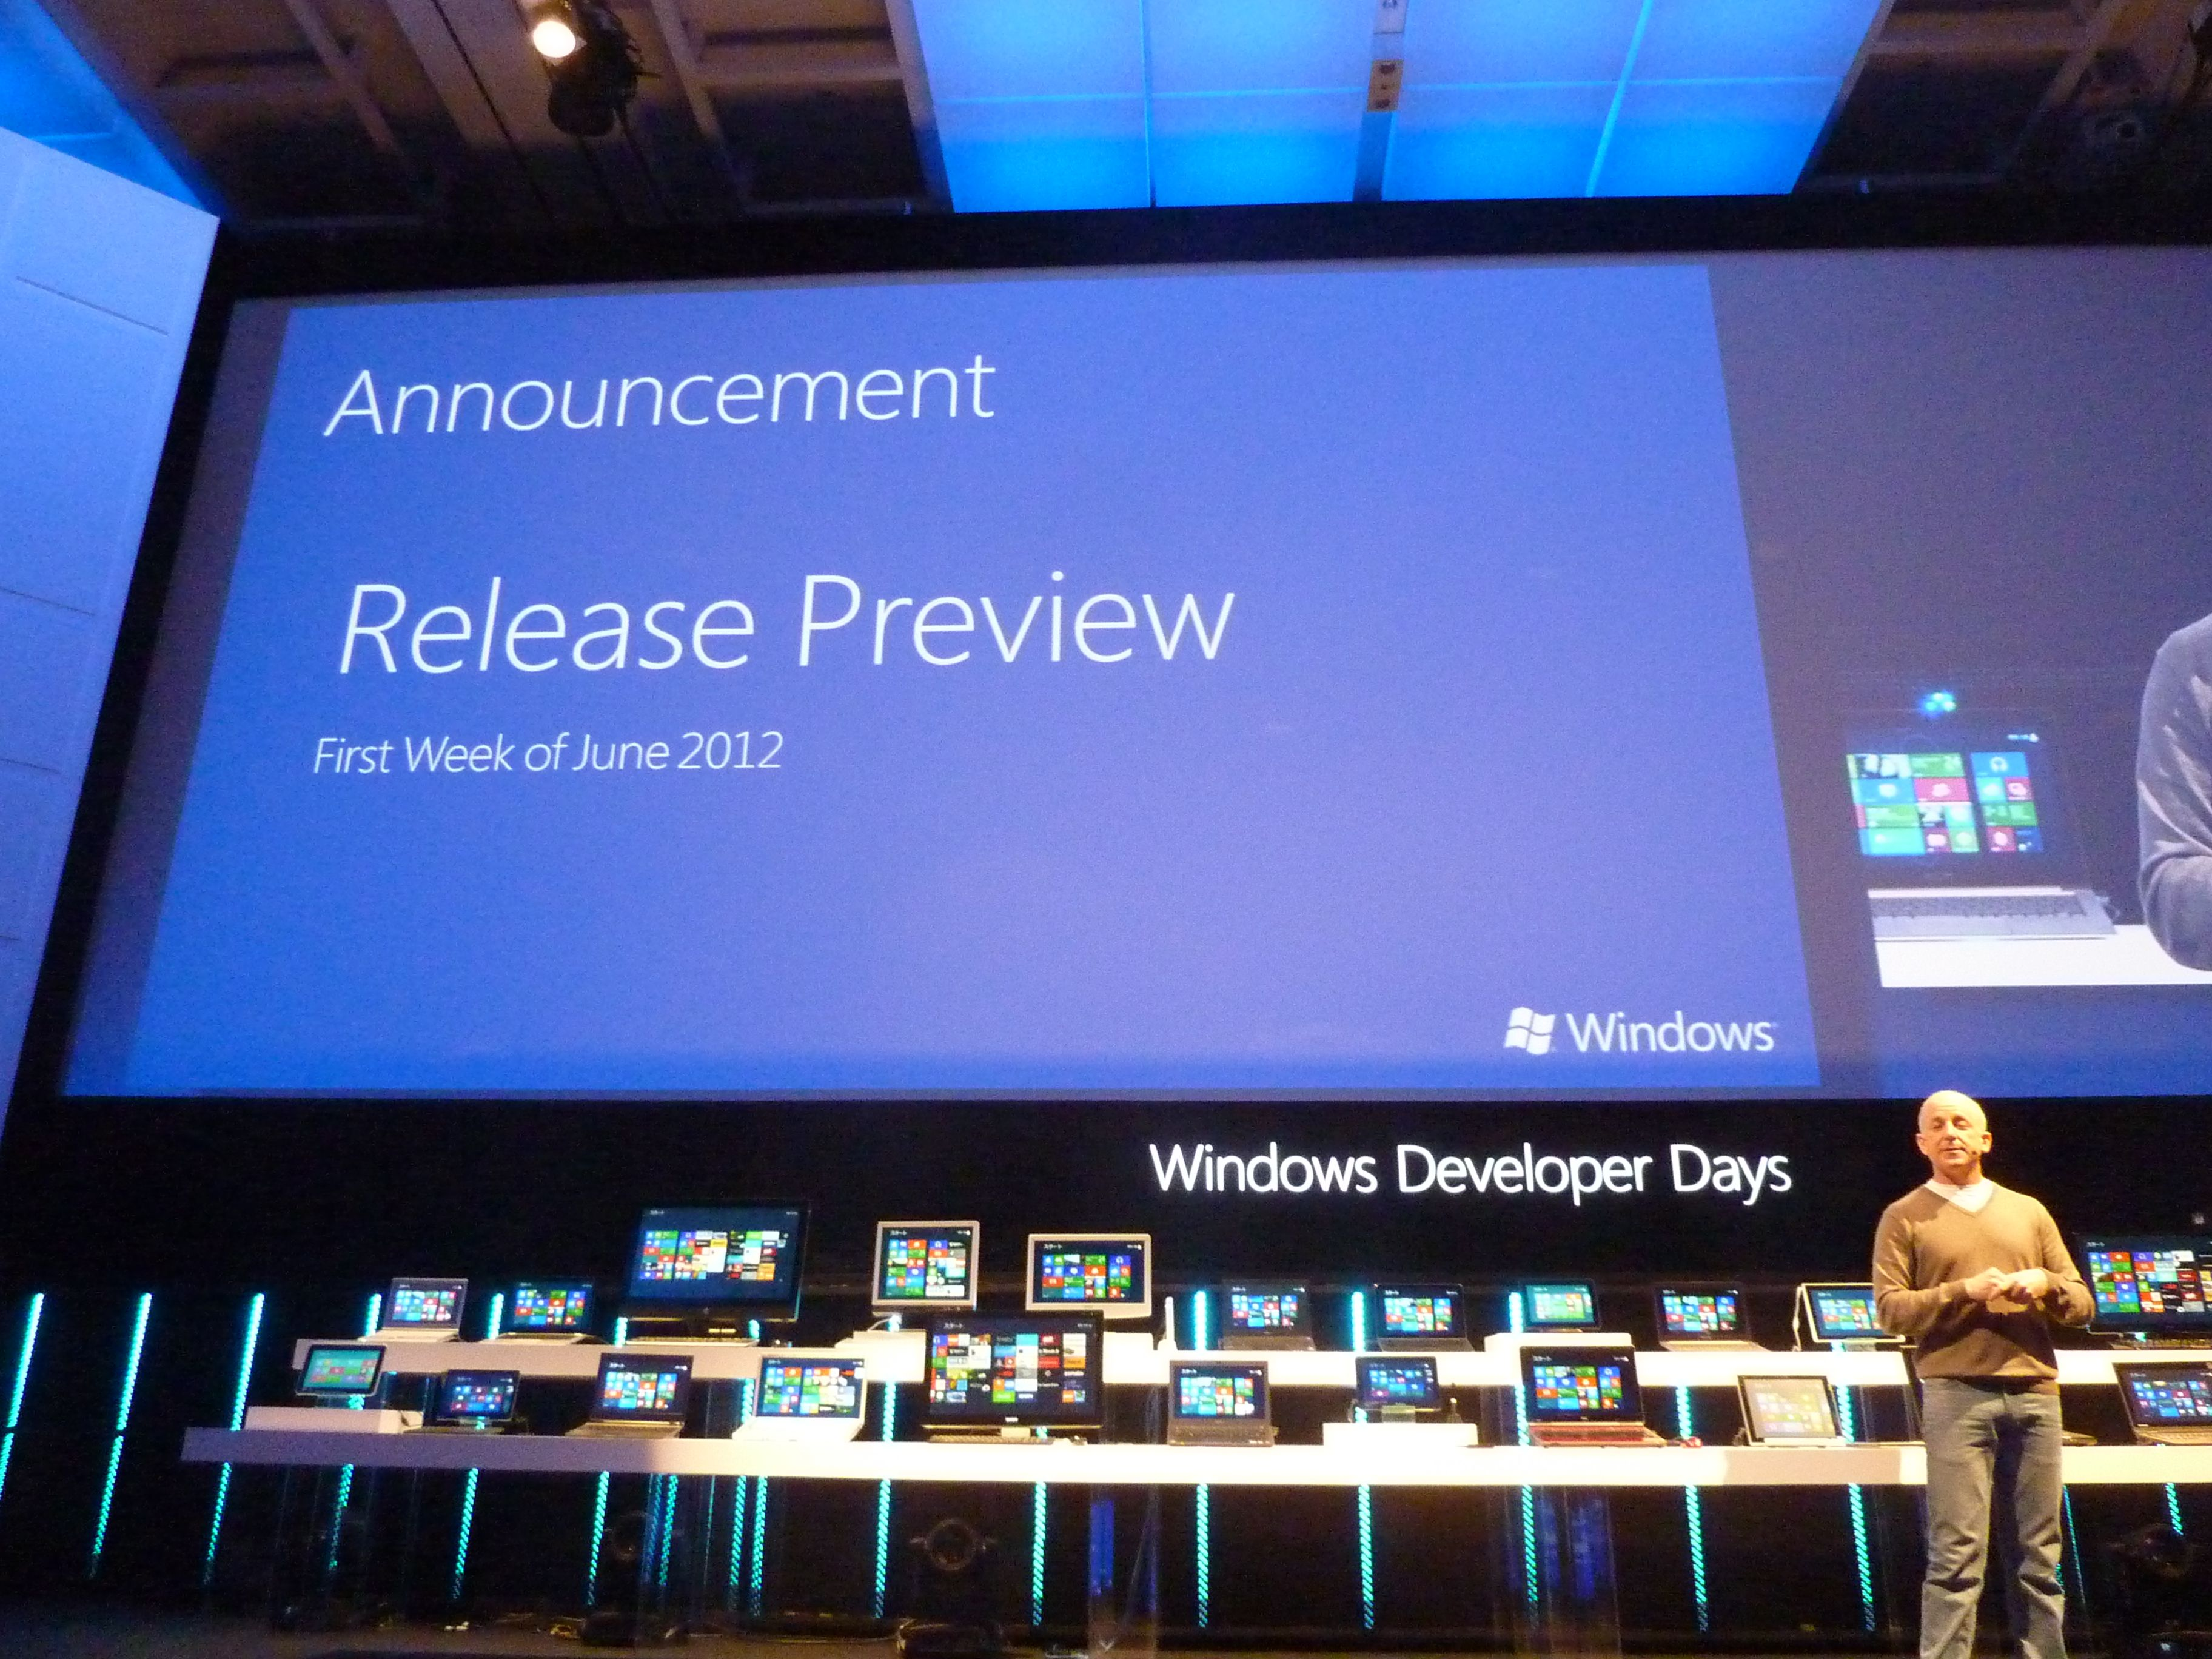 Mr. Sinofsky said Windows 8 Release Preview will be in available at 1st week in June 2012